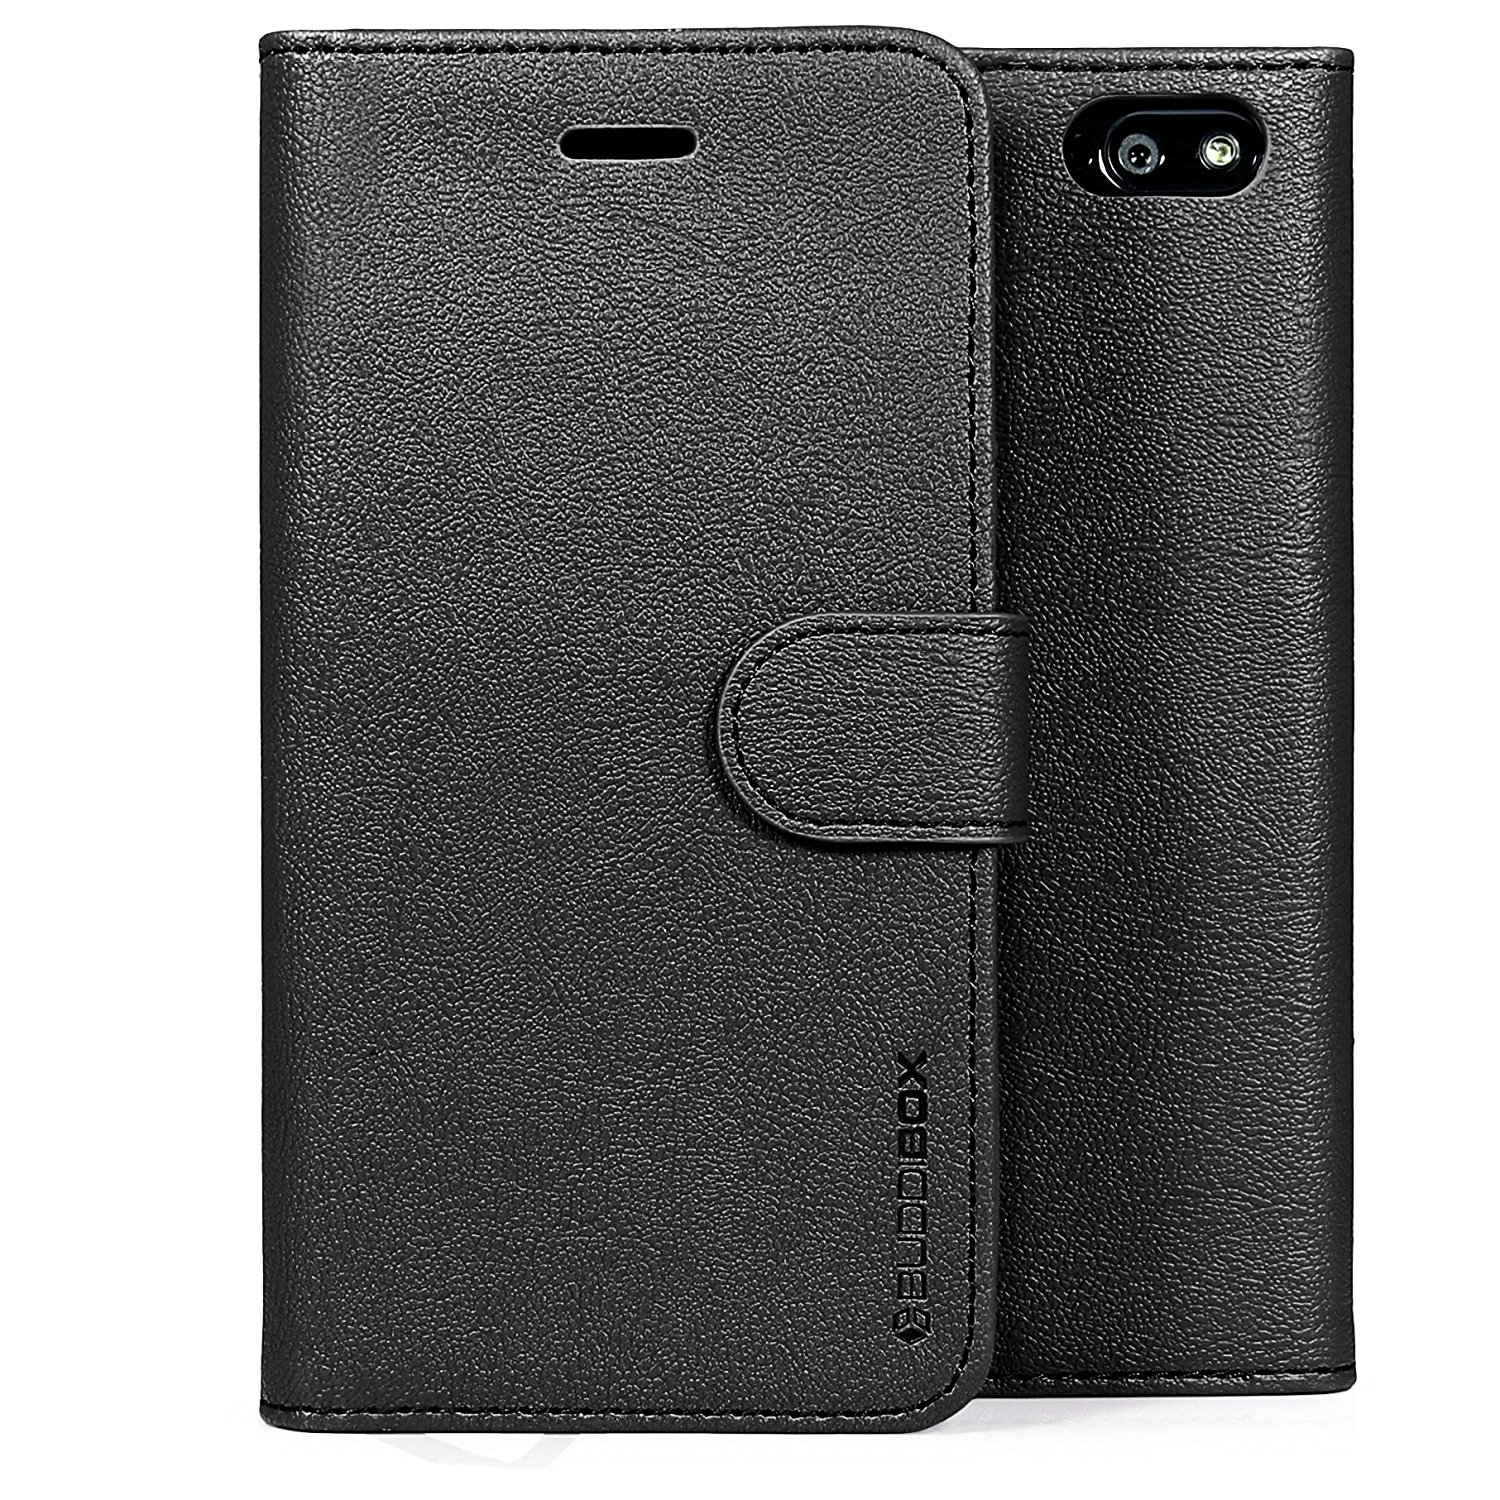 Fire Phone Case, BUDDIBOX [Wallet Case] Premium PU Leather Wallet Case with [Kickstand] Card Holder and ID Slot for Amazon Fire Phone, (Black)